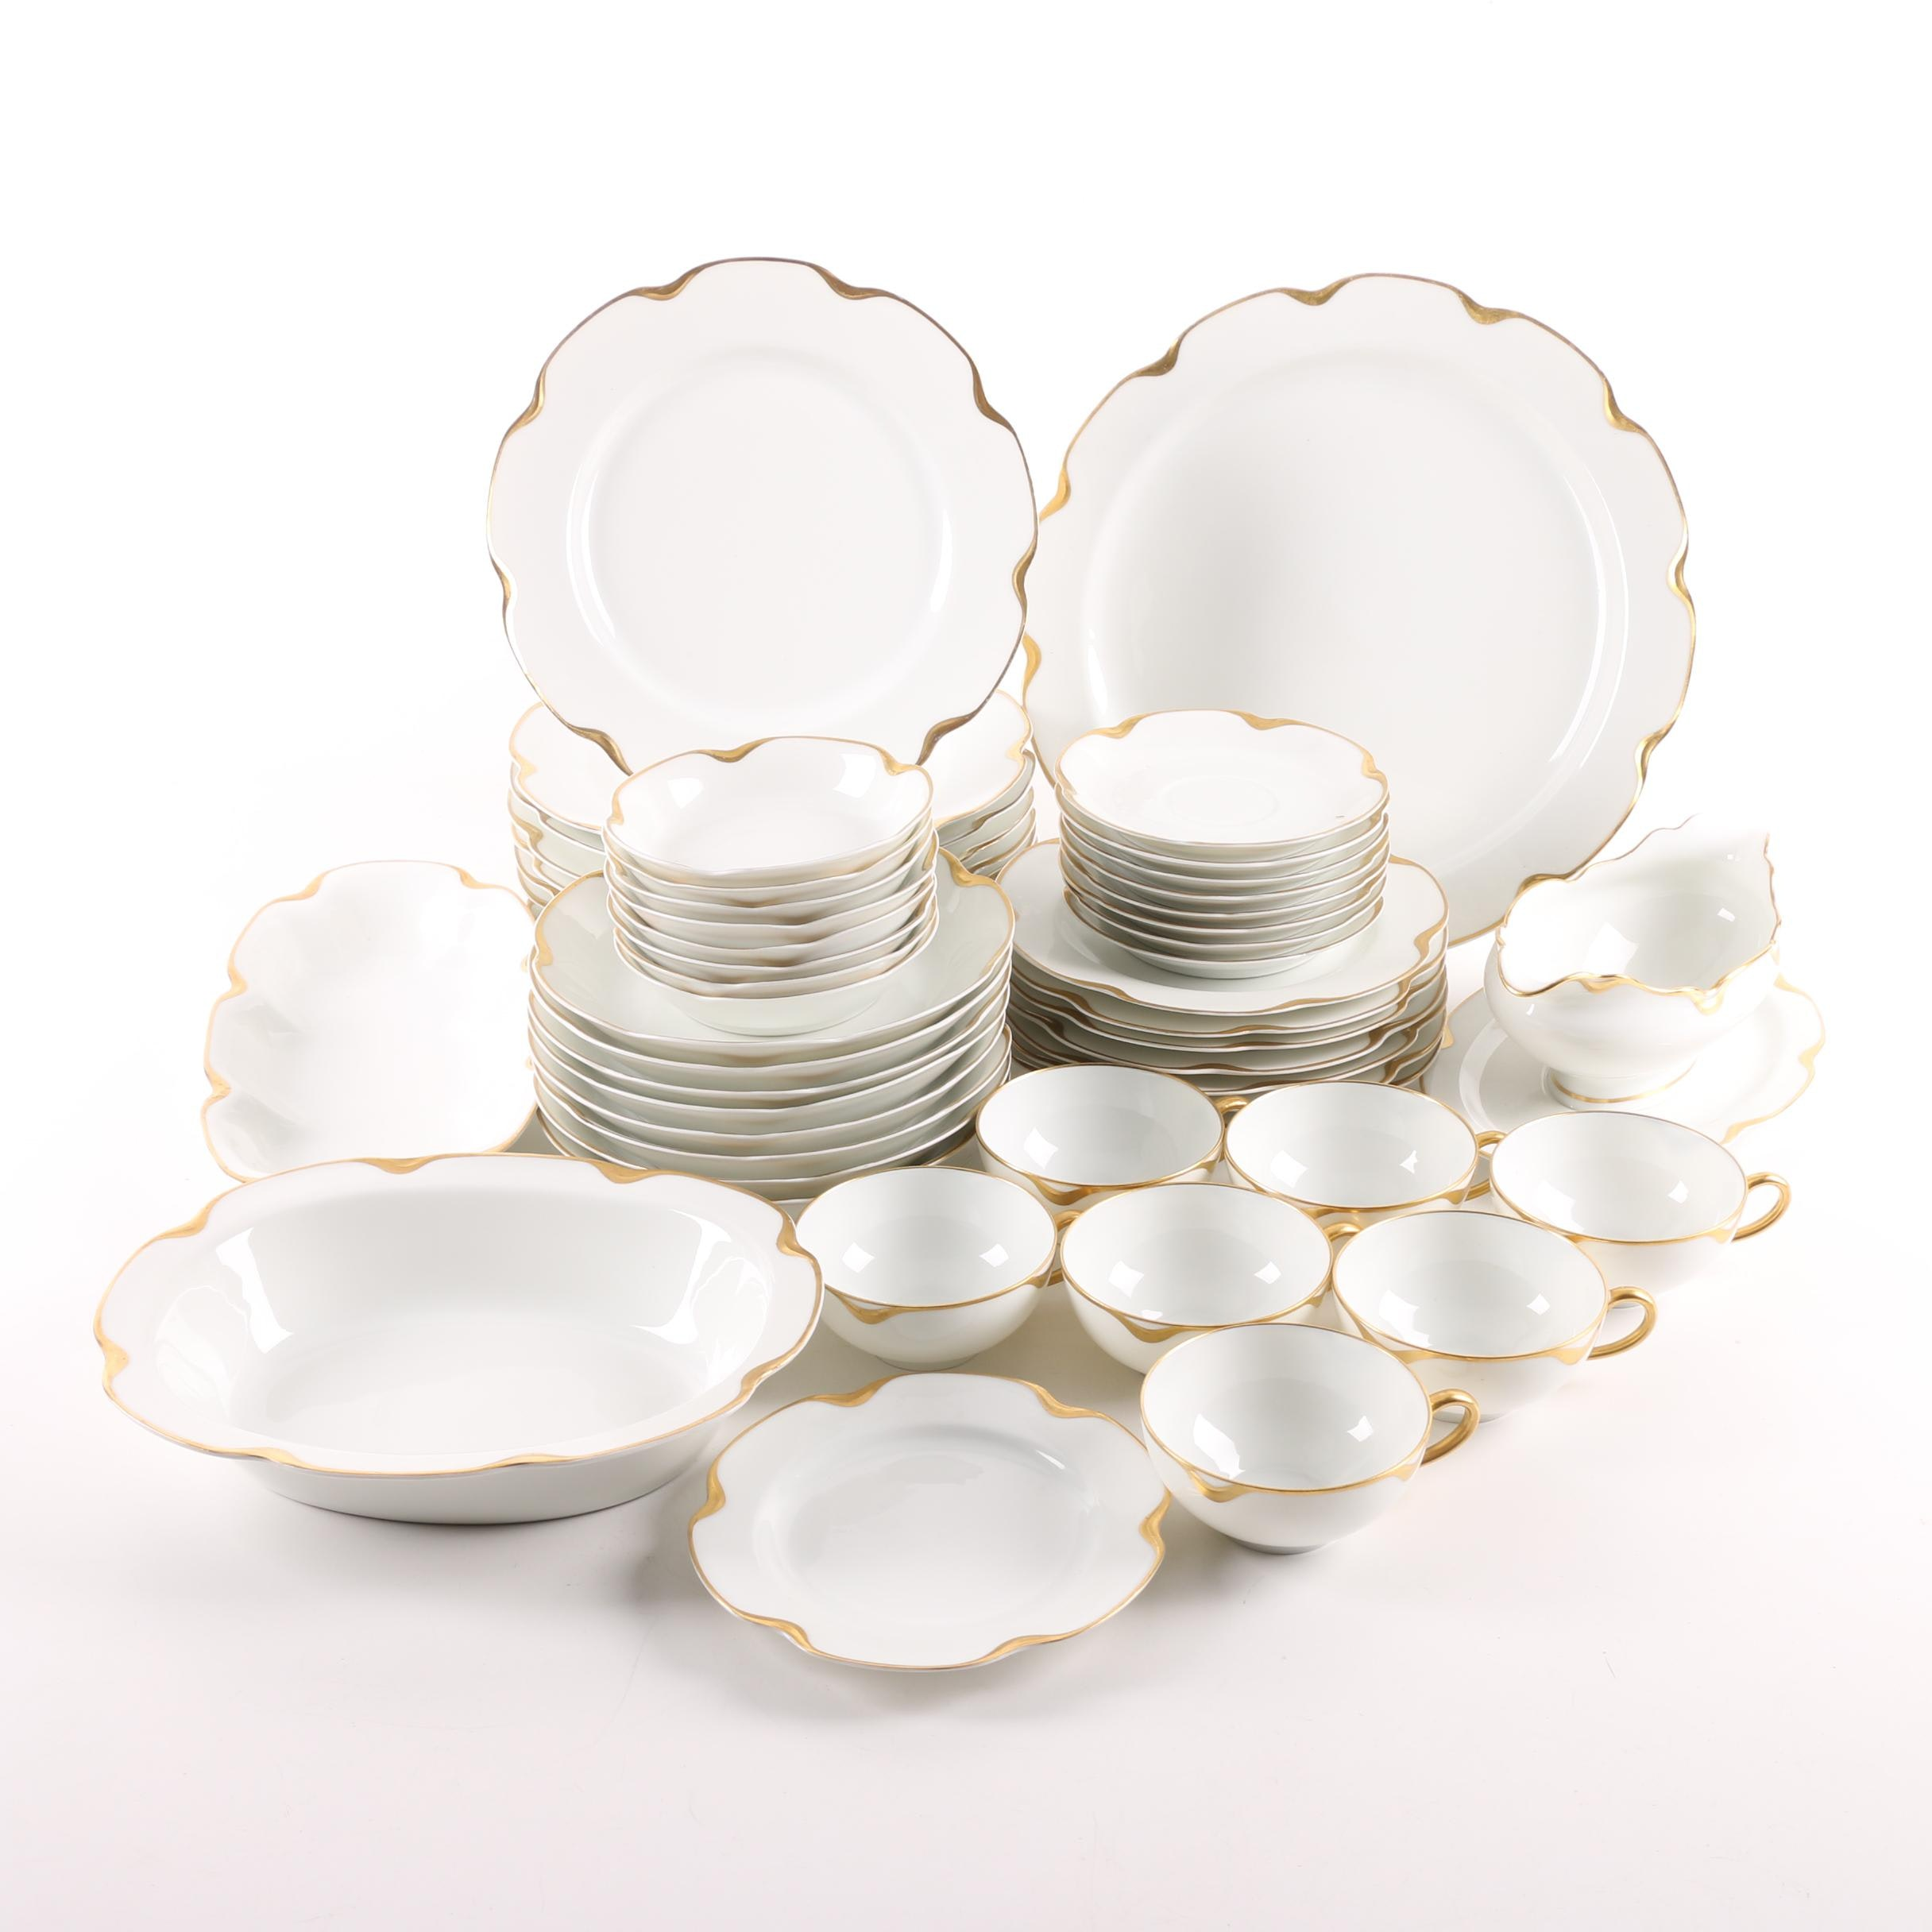 """Haviland & Co. Limoges """"Ranson"""" Porcelain Tableware with Gold Accents"""